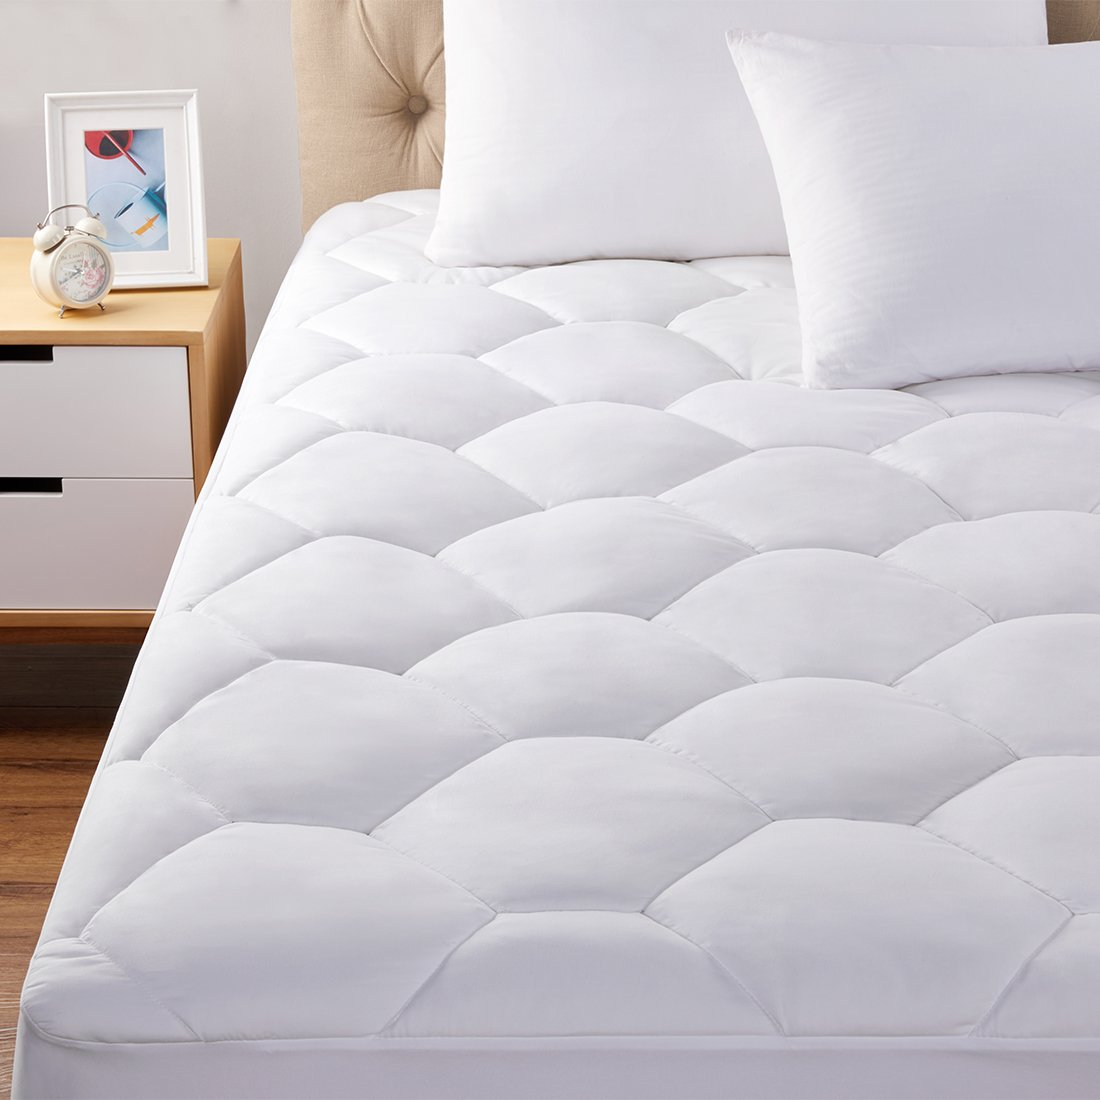 Oaskys Mattress Pads cover queen size Hypoallergenic Quilted Fitted with deep pocket cooling and breathable for hotel